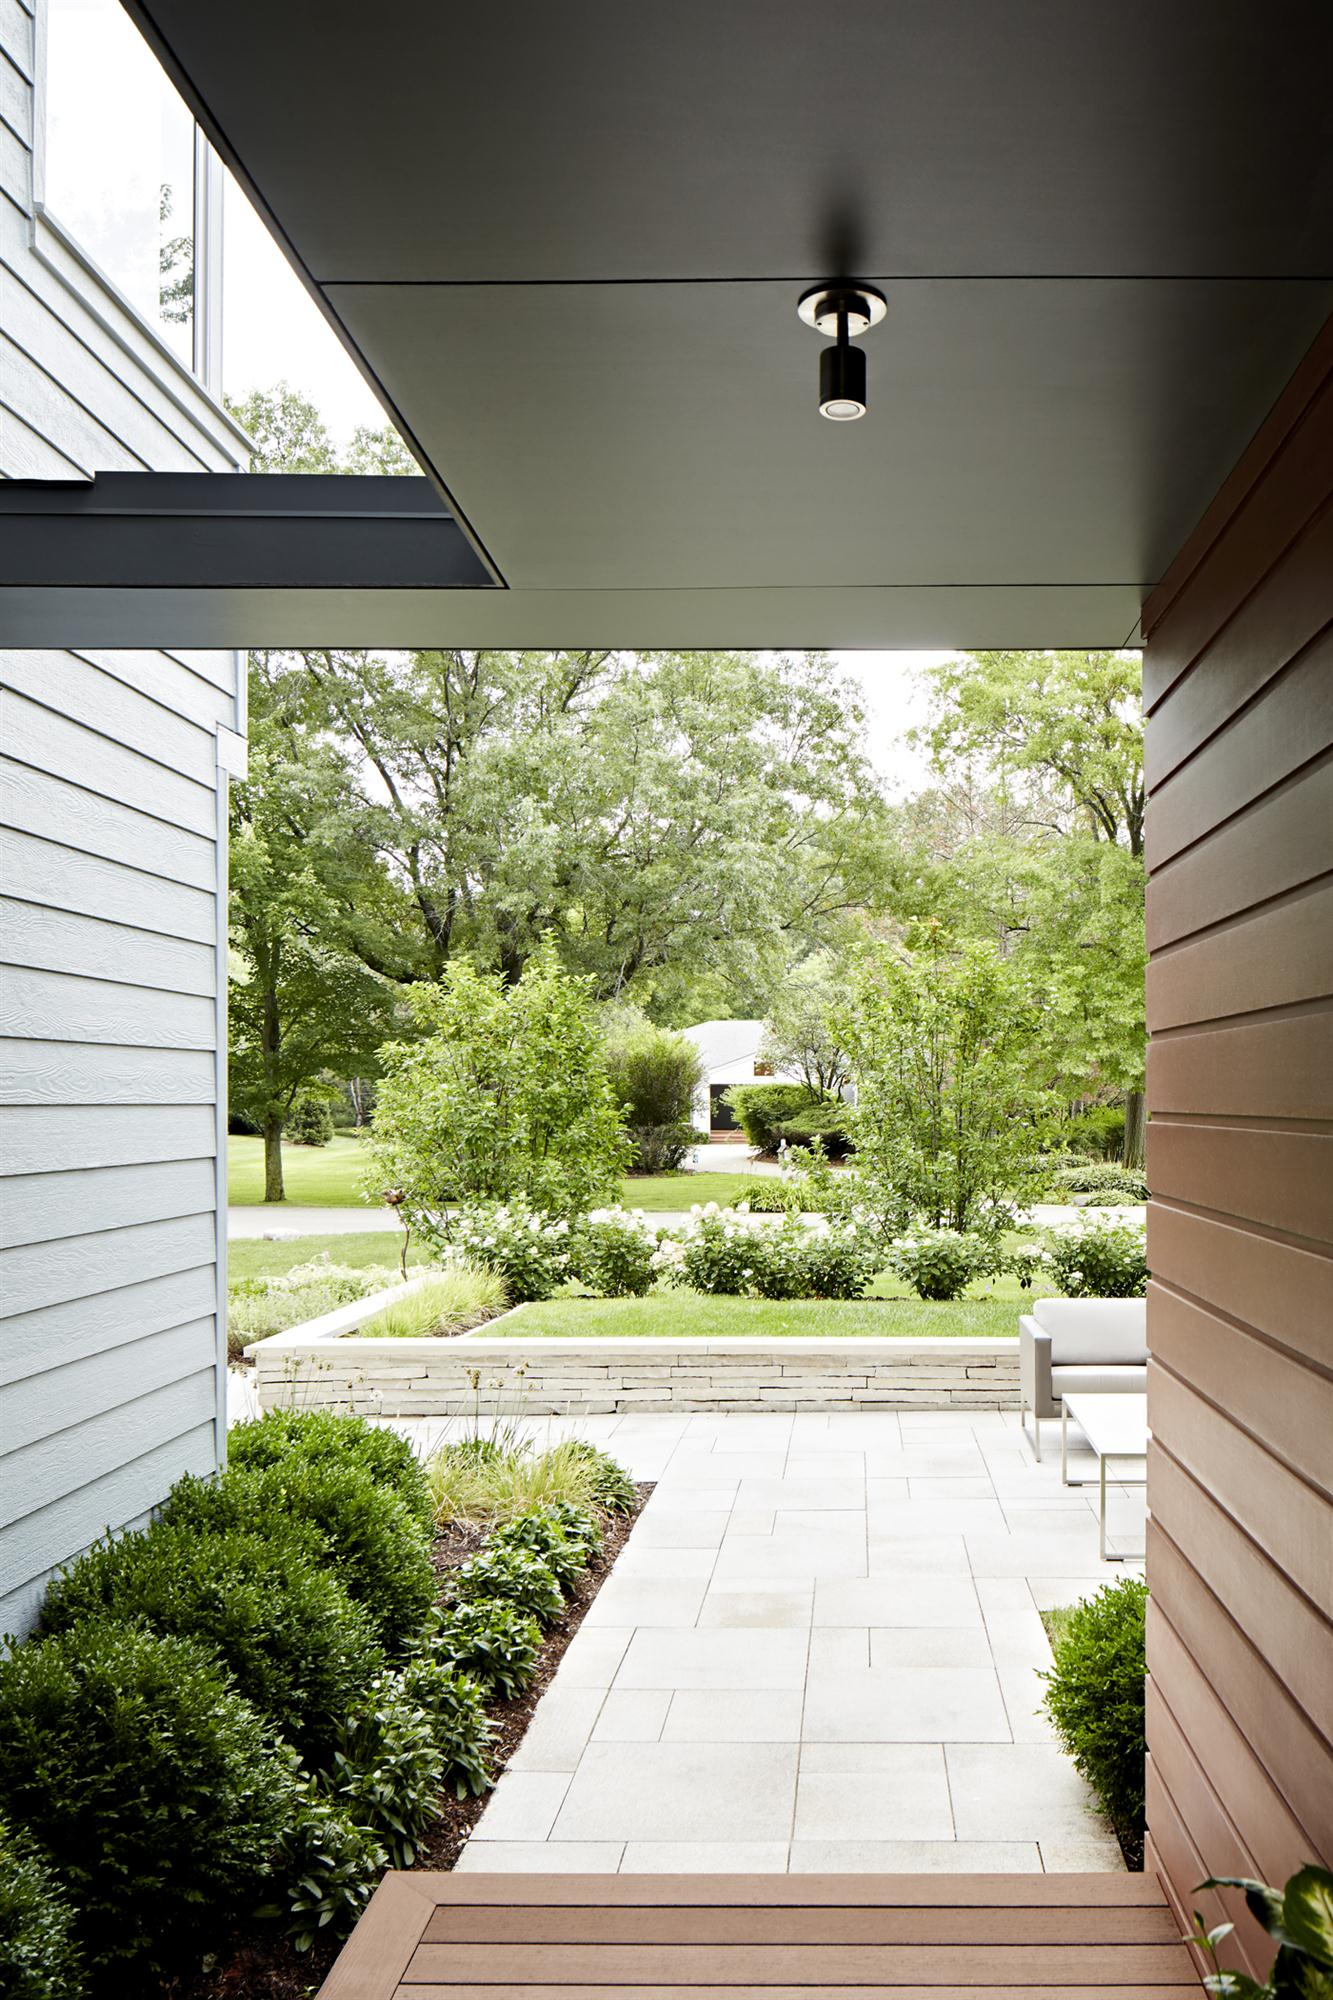 Chicago Architects for Home Renovation